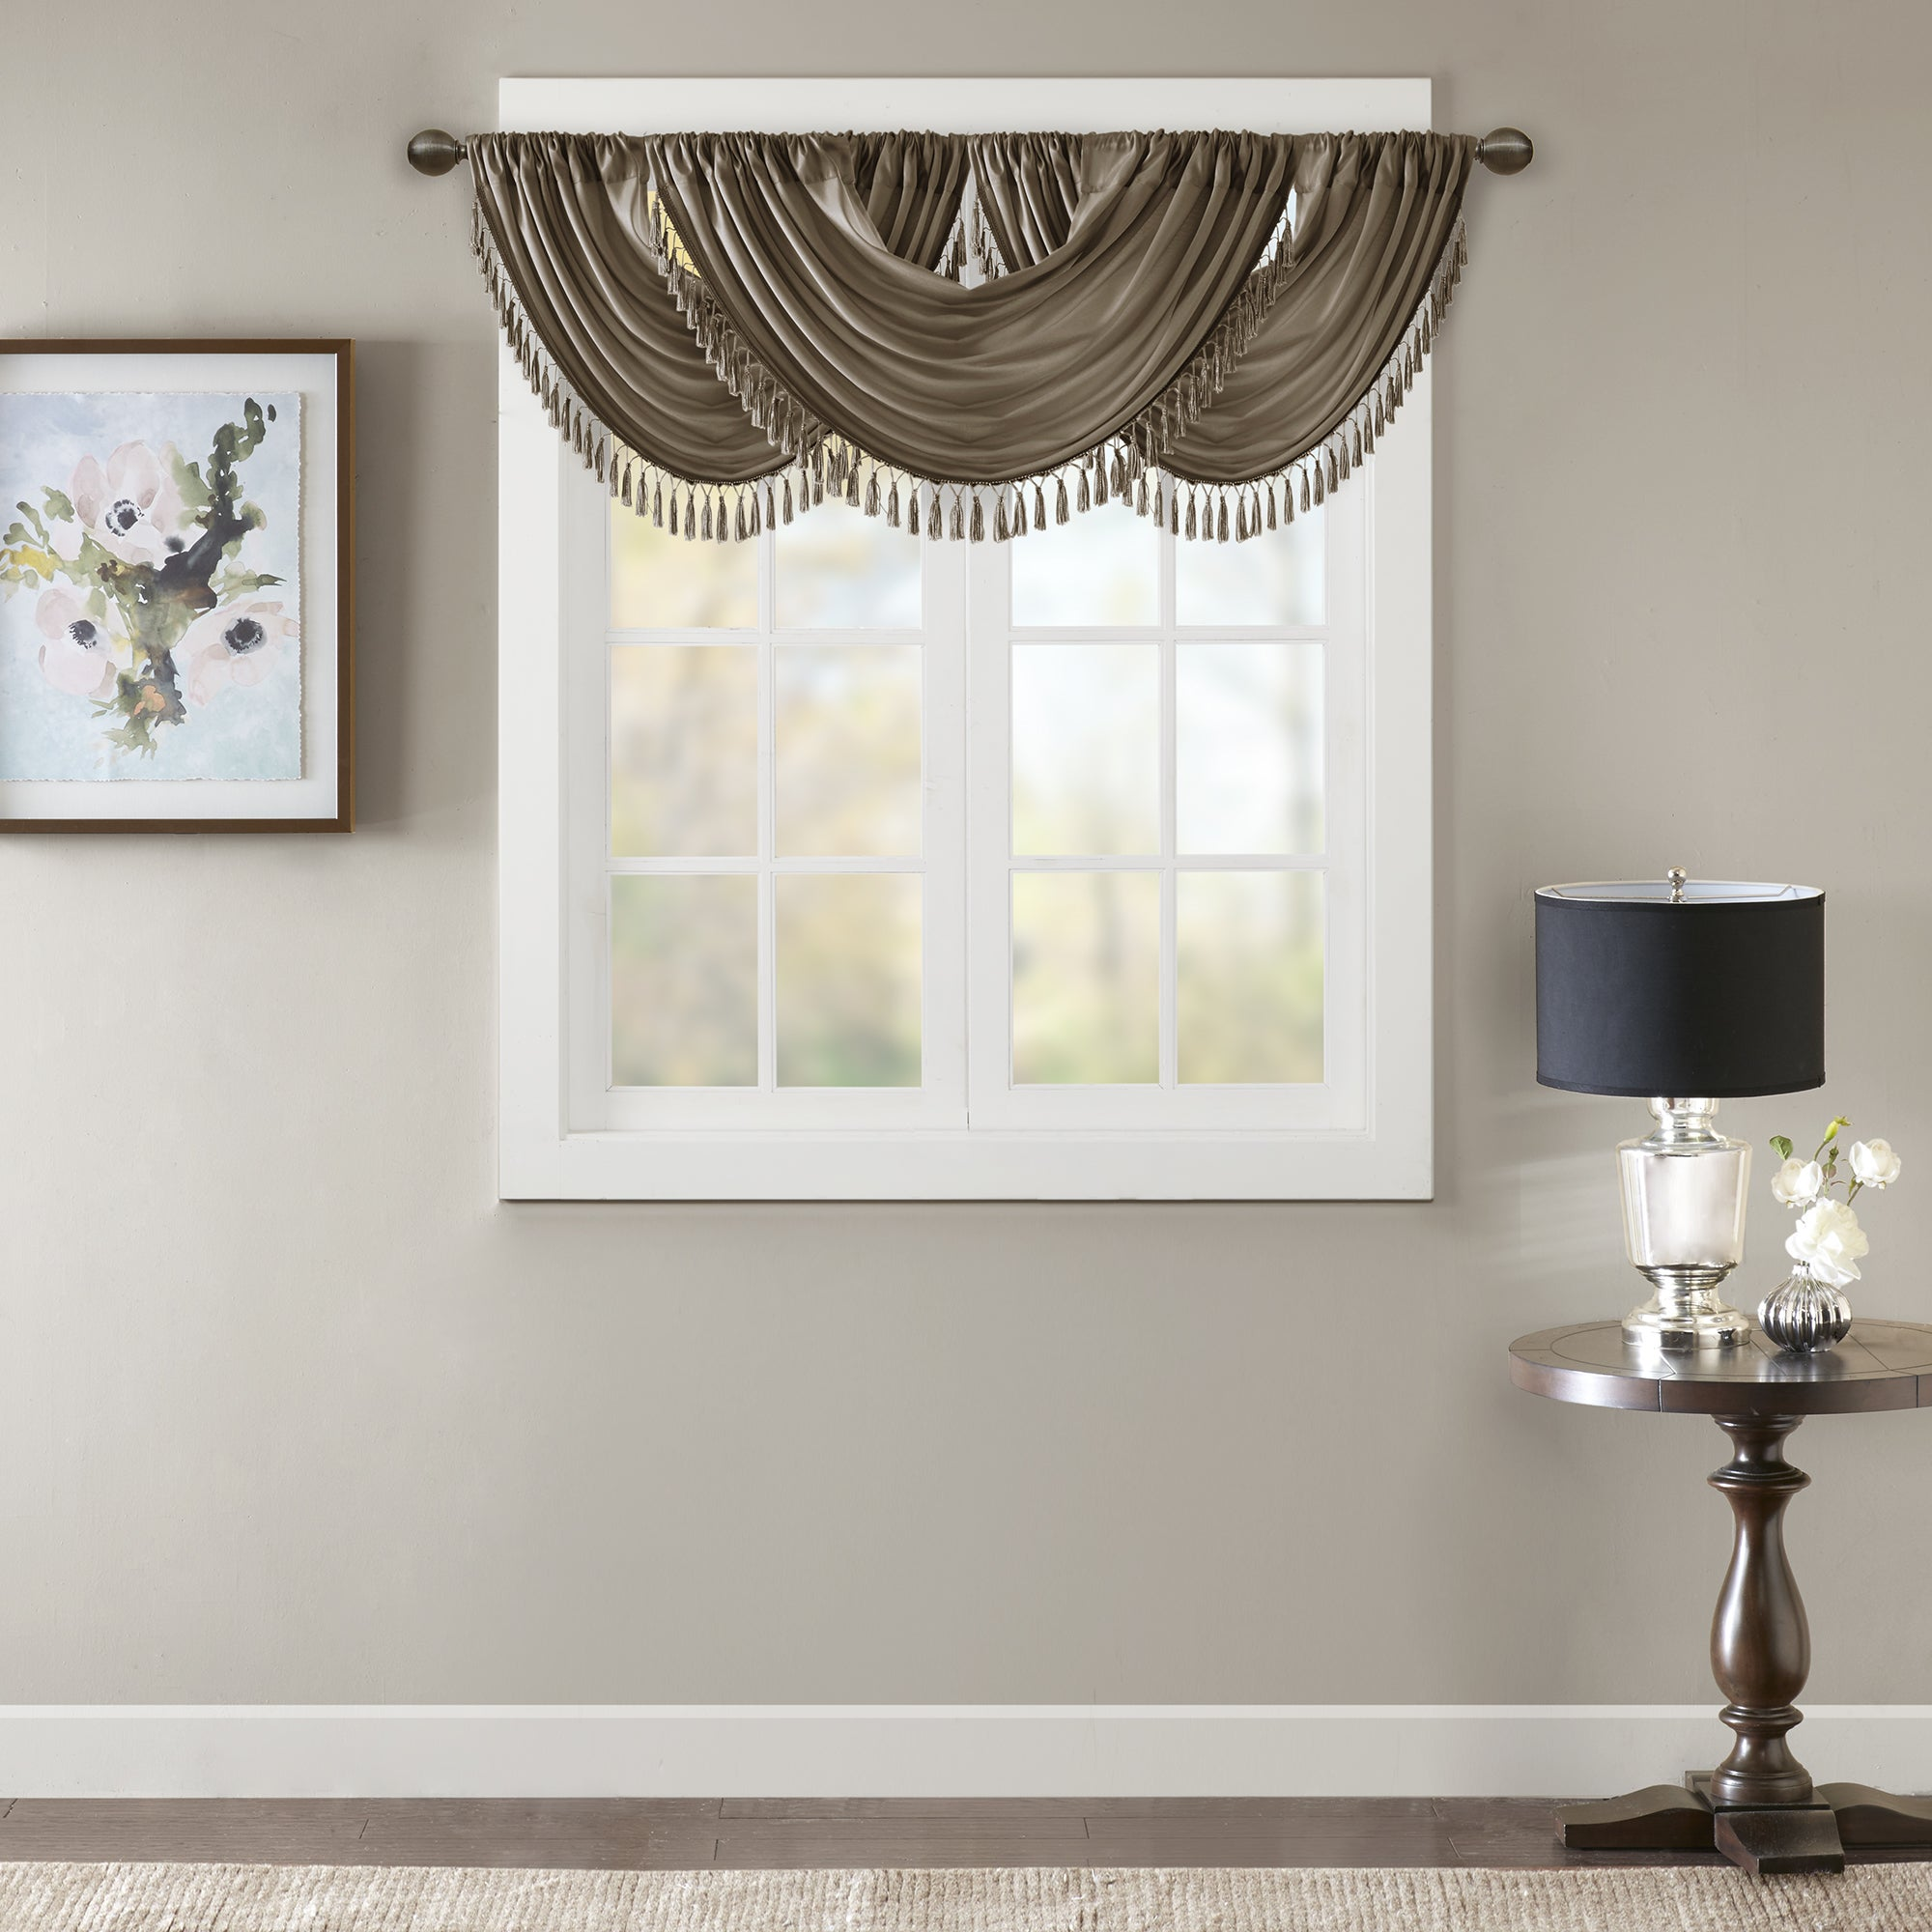 ideas valances railing lined for curtains stairs kitchen window and swag waverly within design curtain valance